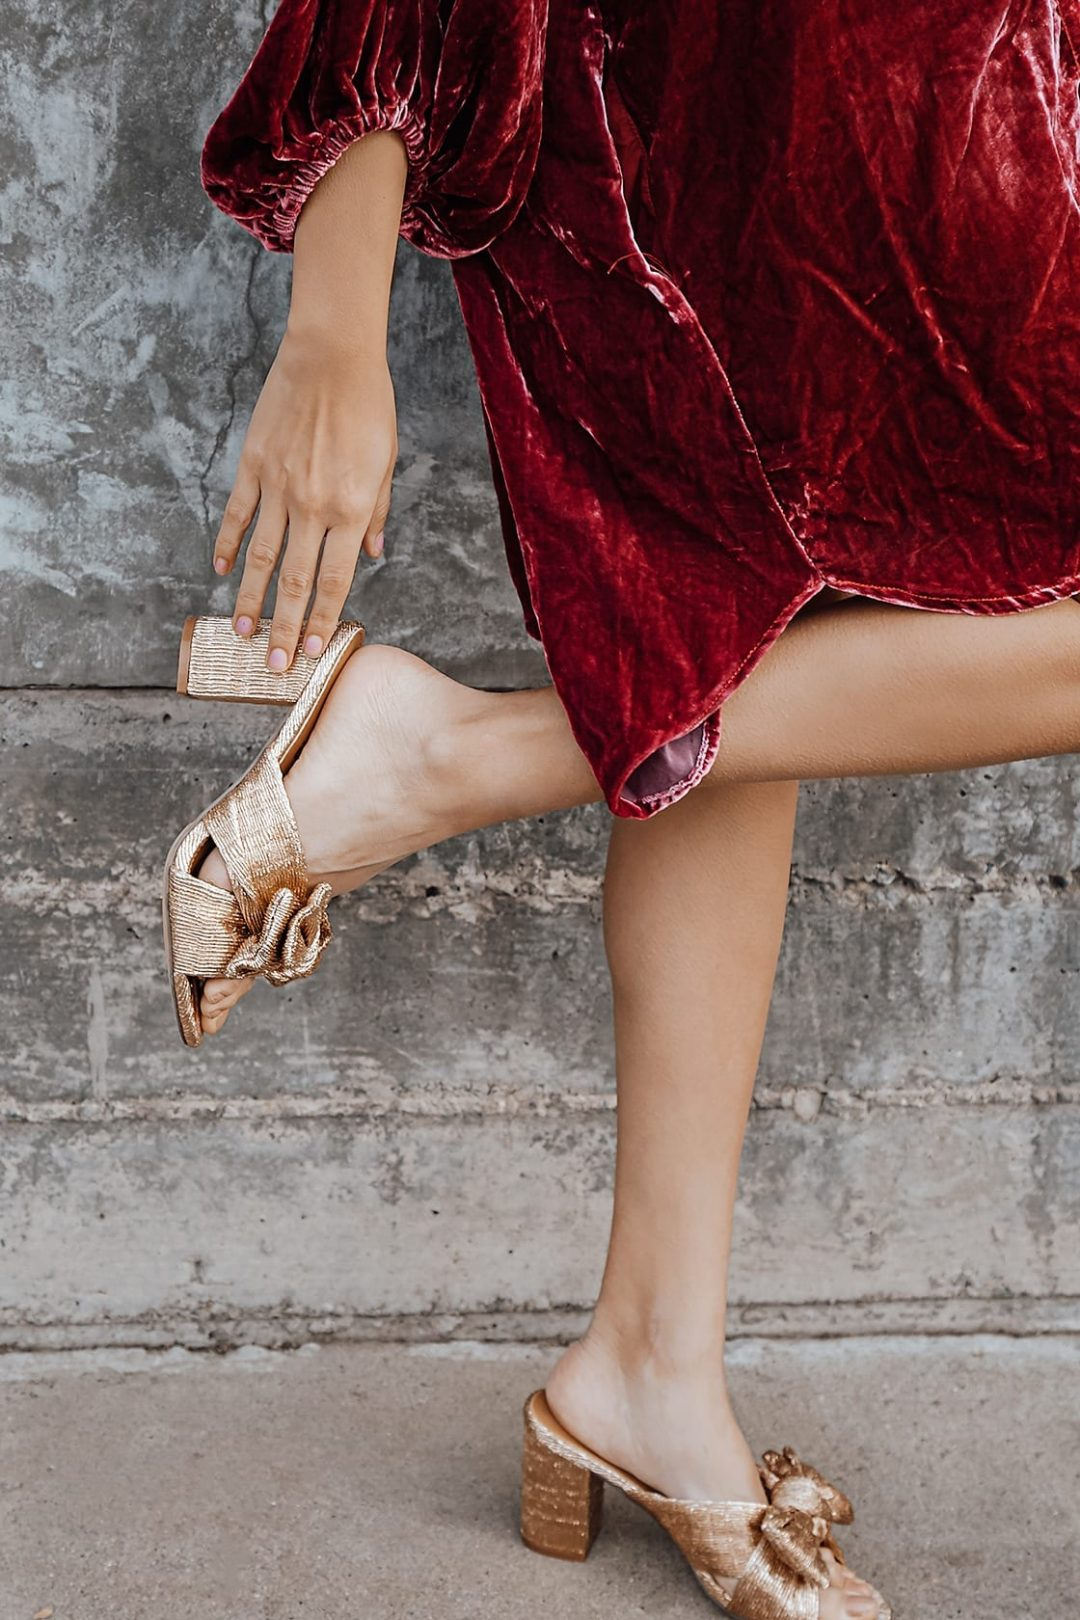 Best Shoe Colors To Wear With A Red Dress: Rose gold sandals